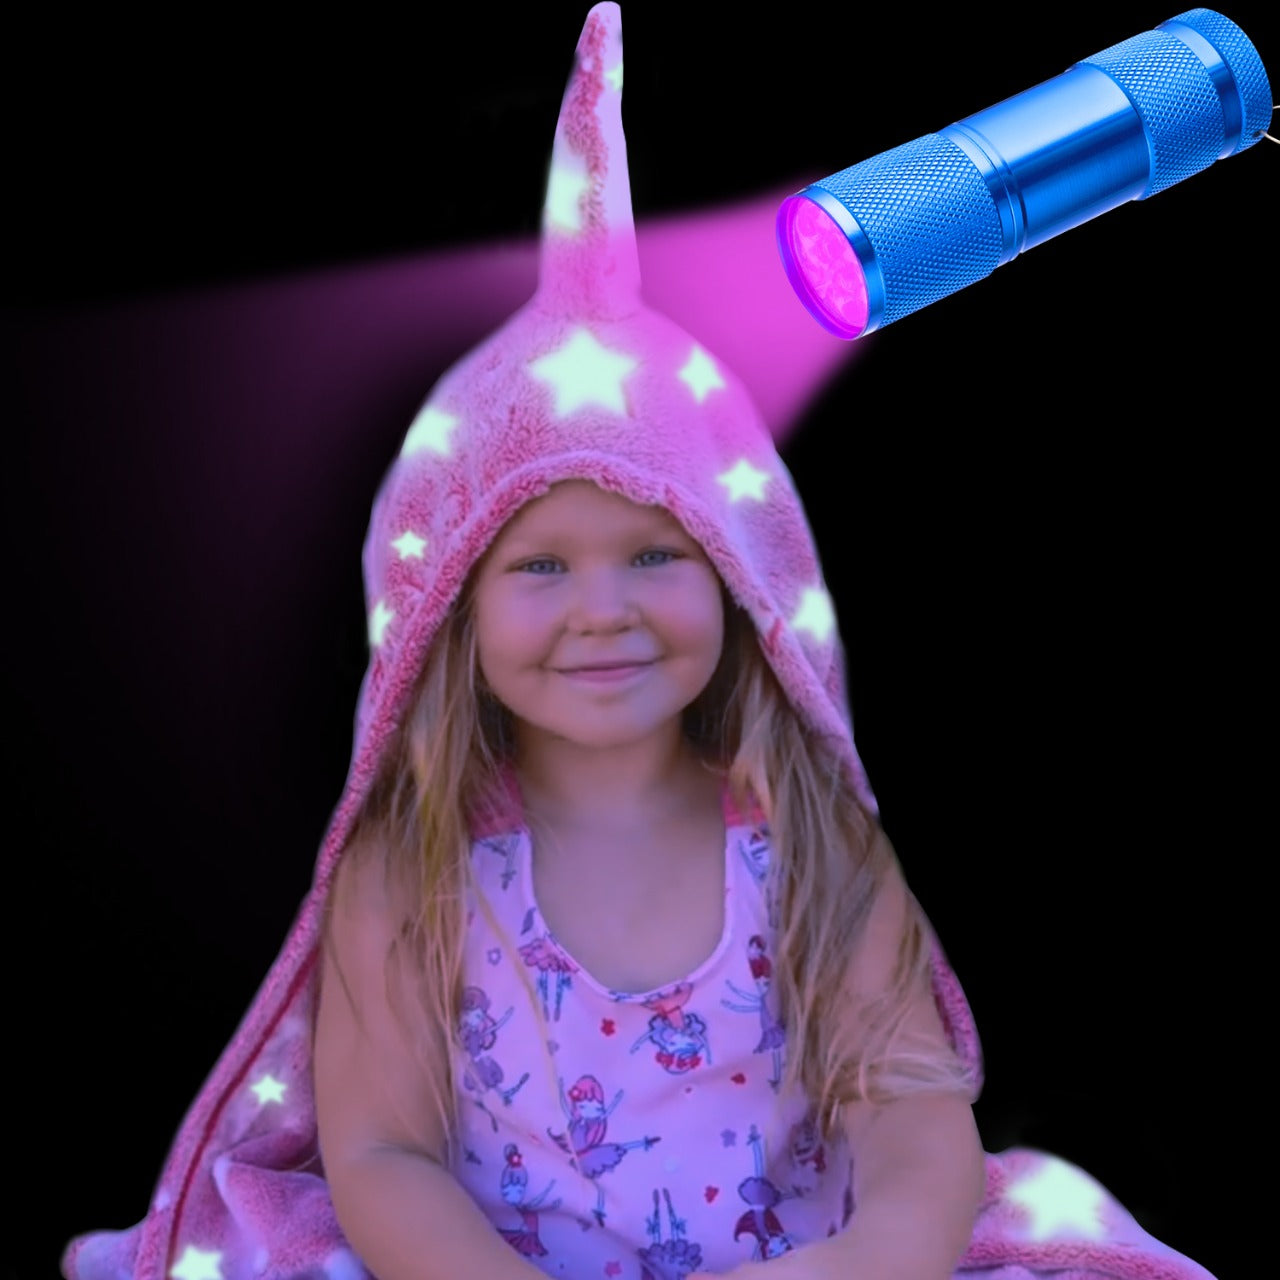 Glow In The Dark Hooded Unicorn Blanket including UV flashlight